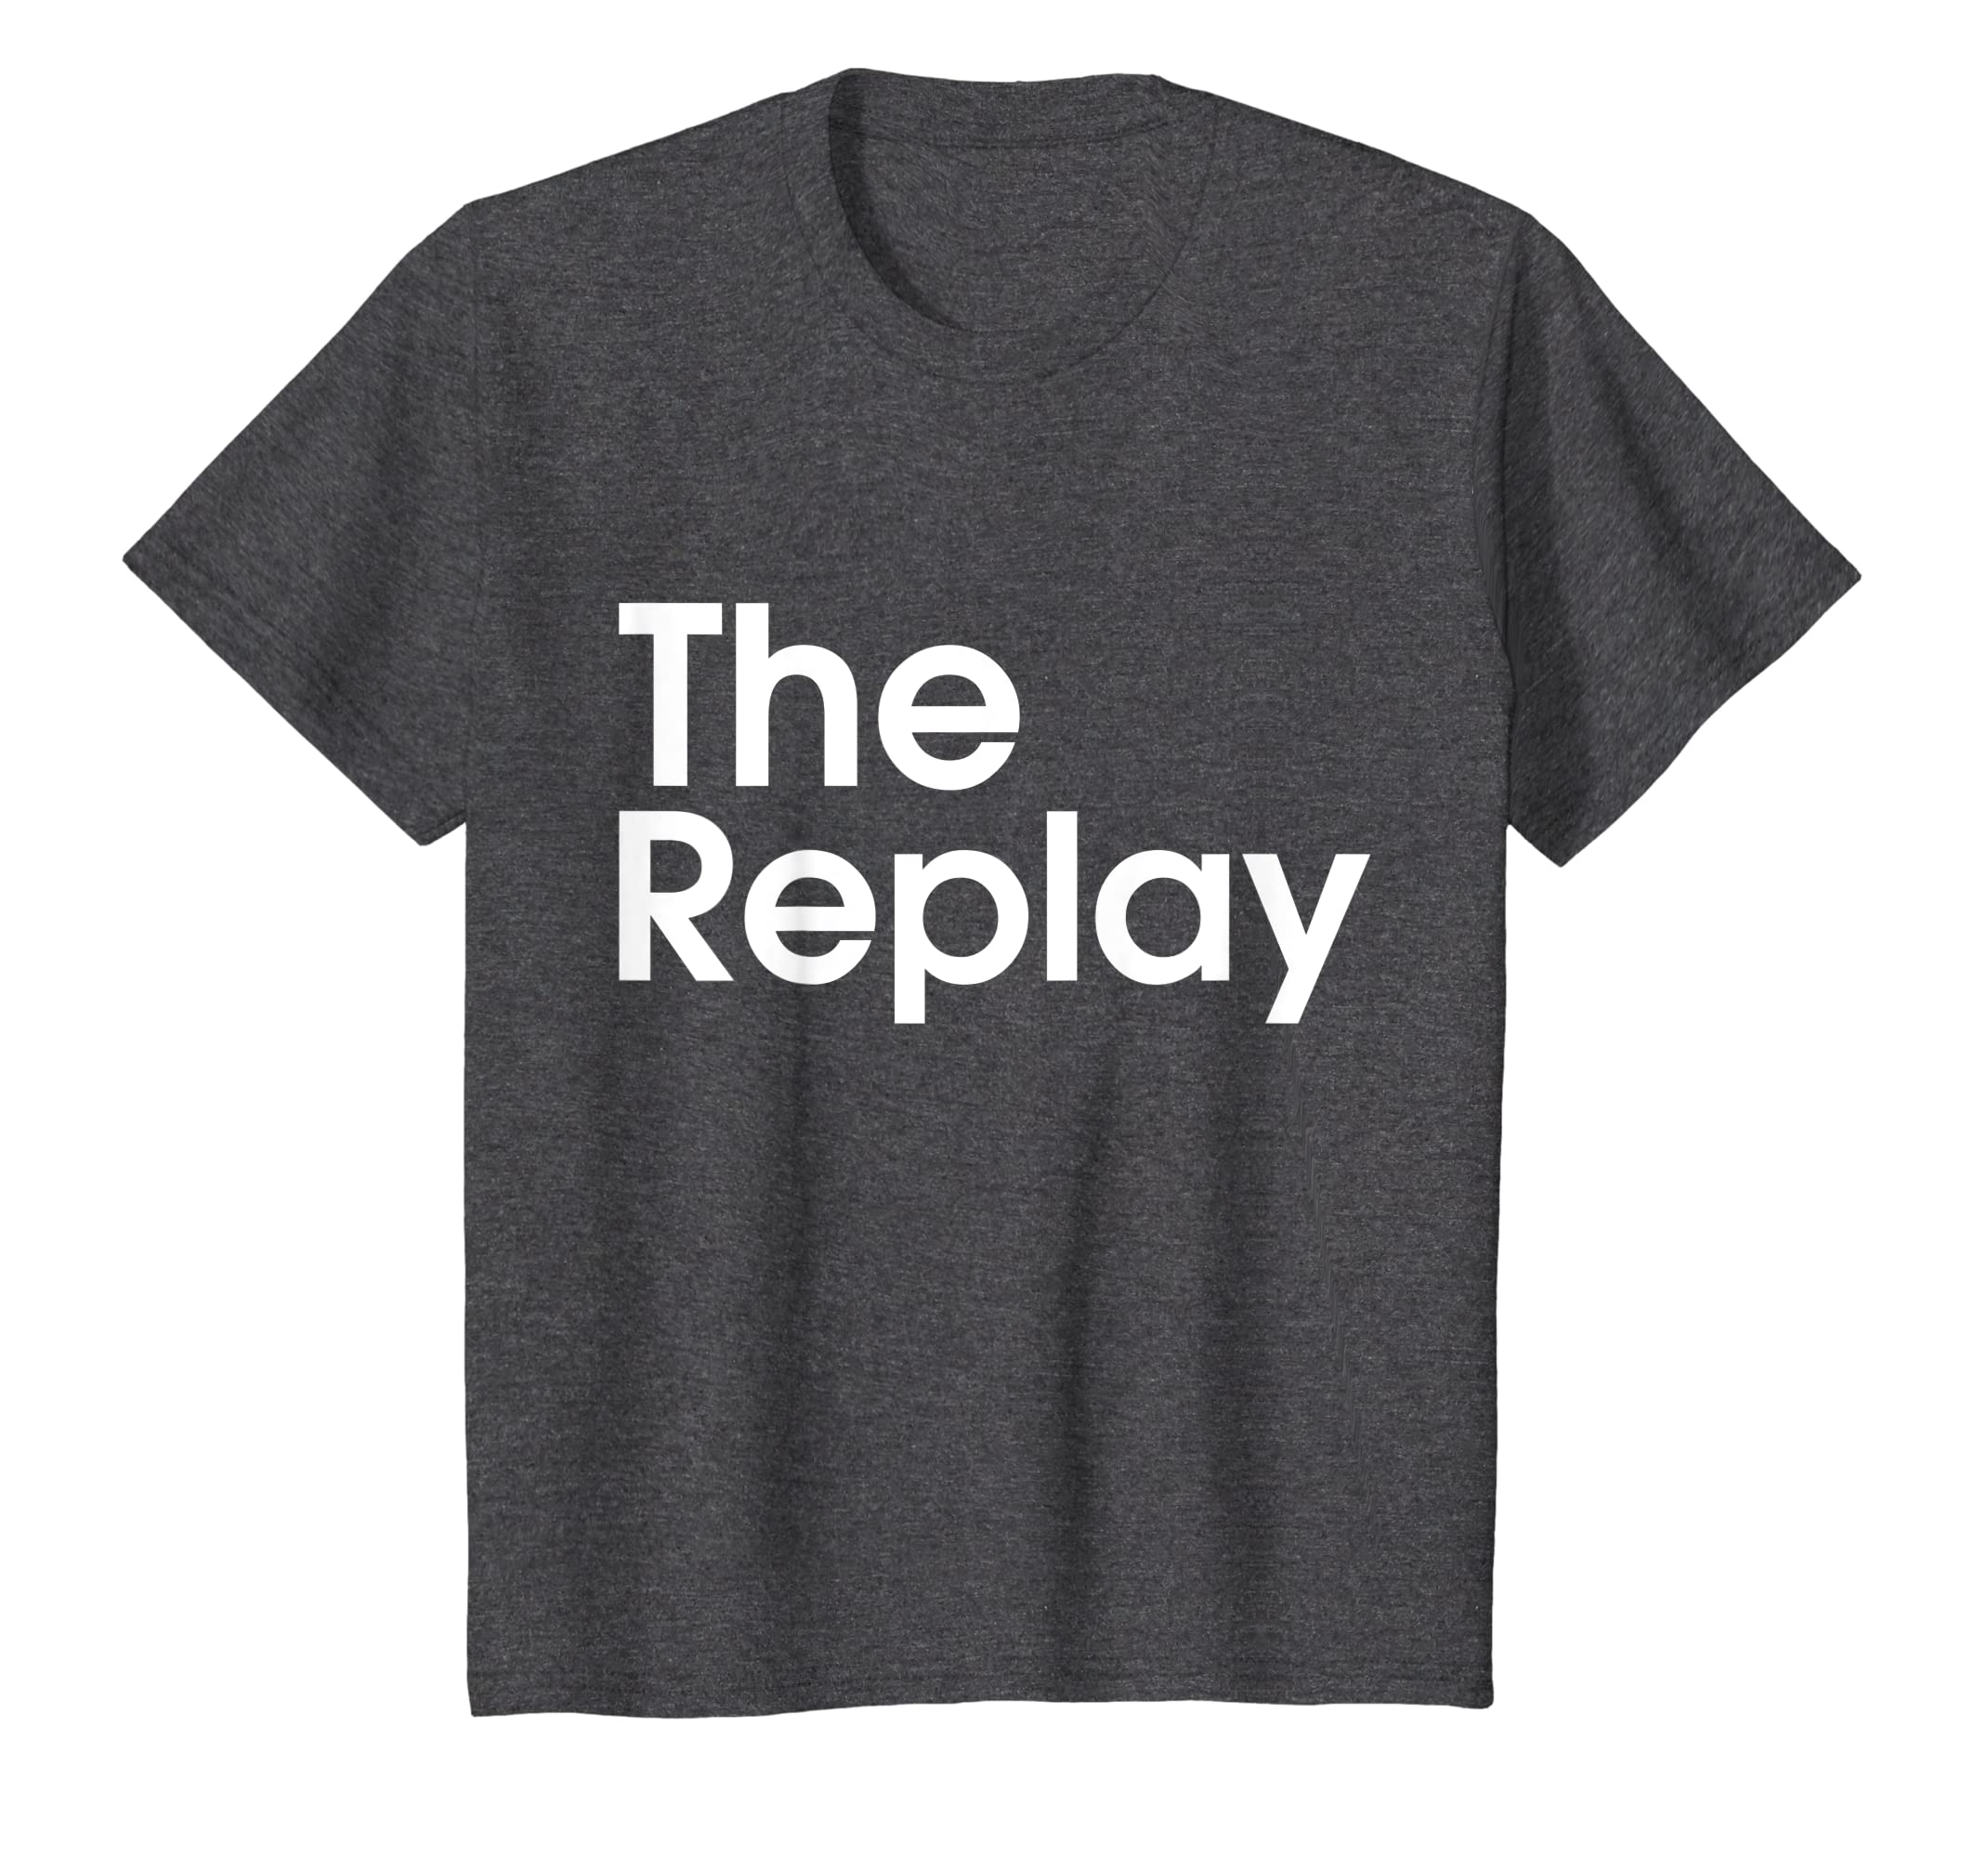 87a87f8d Amazon.com: The DJ The Original The Remix The Replay Fathers day Shirts:  Clothing